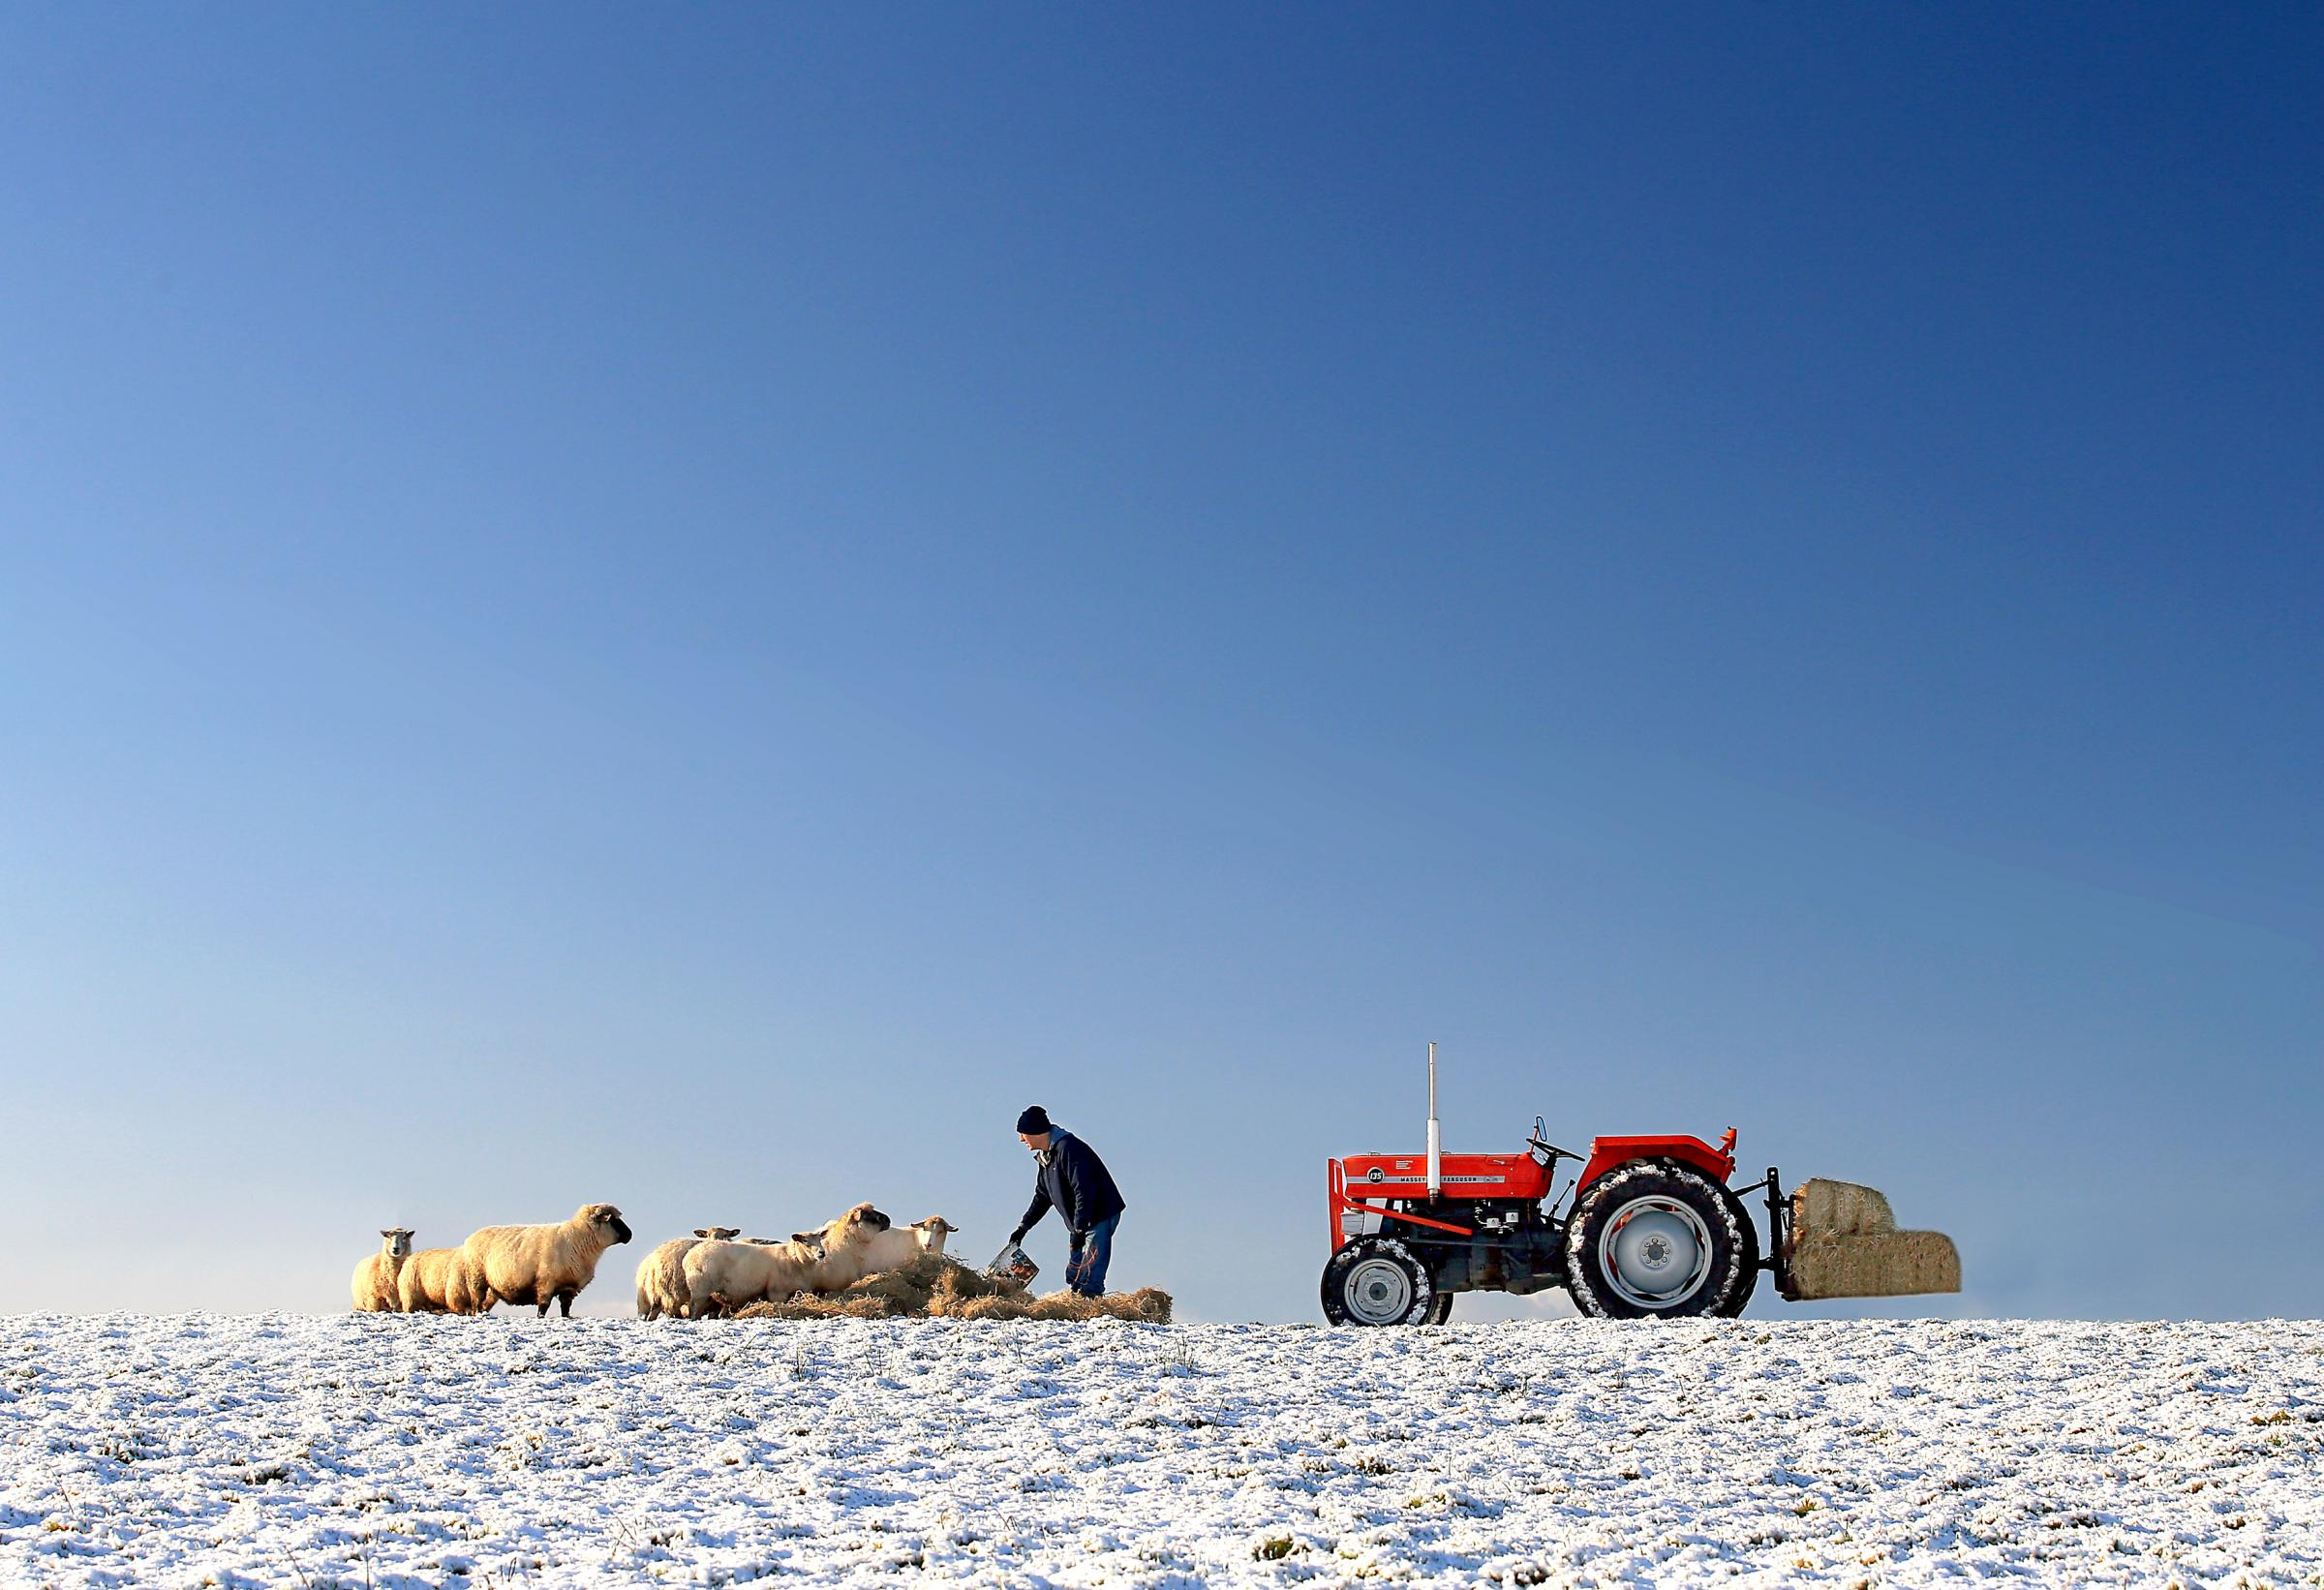 Raymond McVitty feeding sheep in the snow - a scene from January 2016 in the calendar.